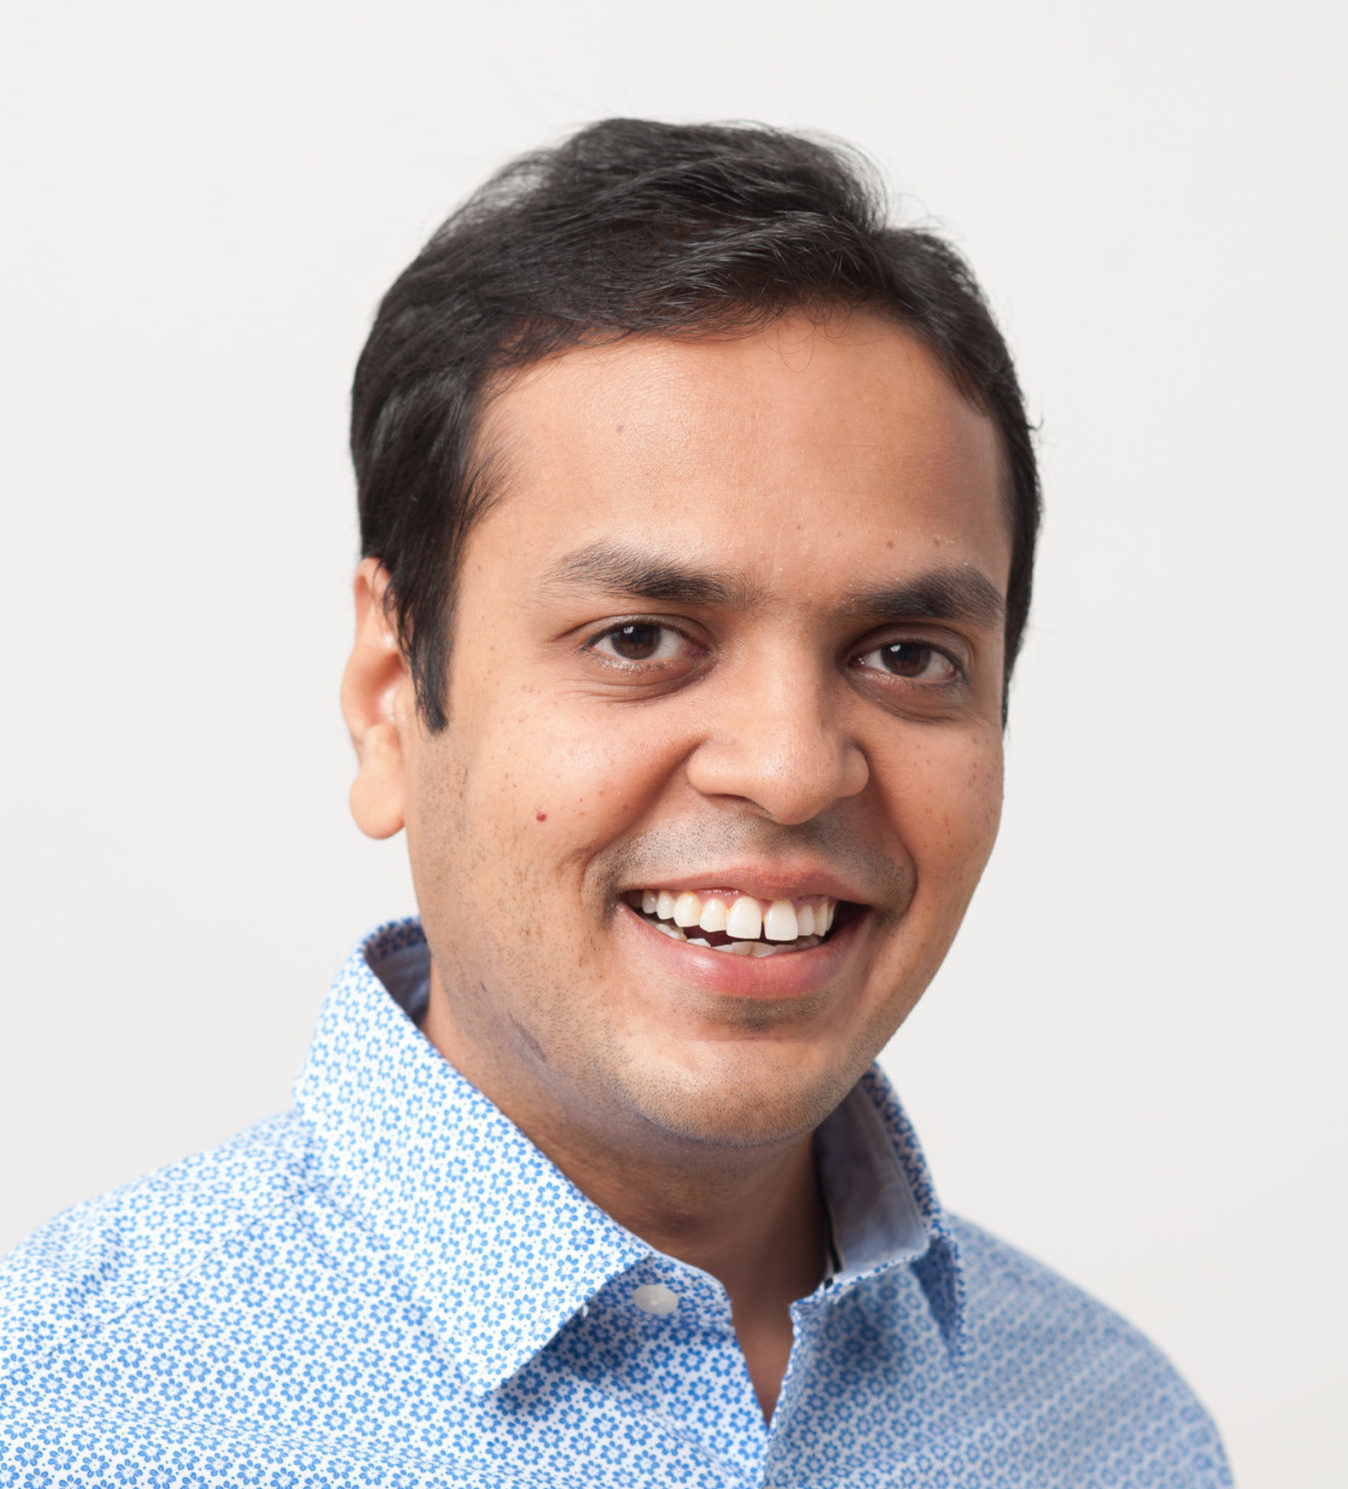 Speaker at PIRATE Live: Pranav Khaitan